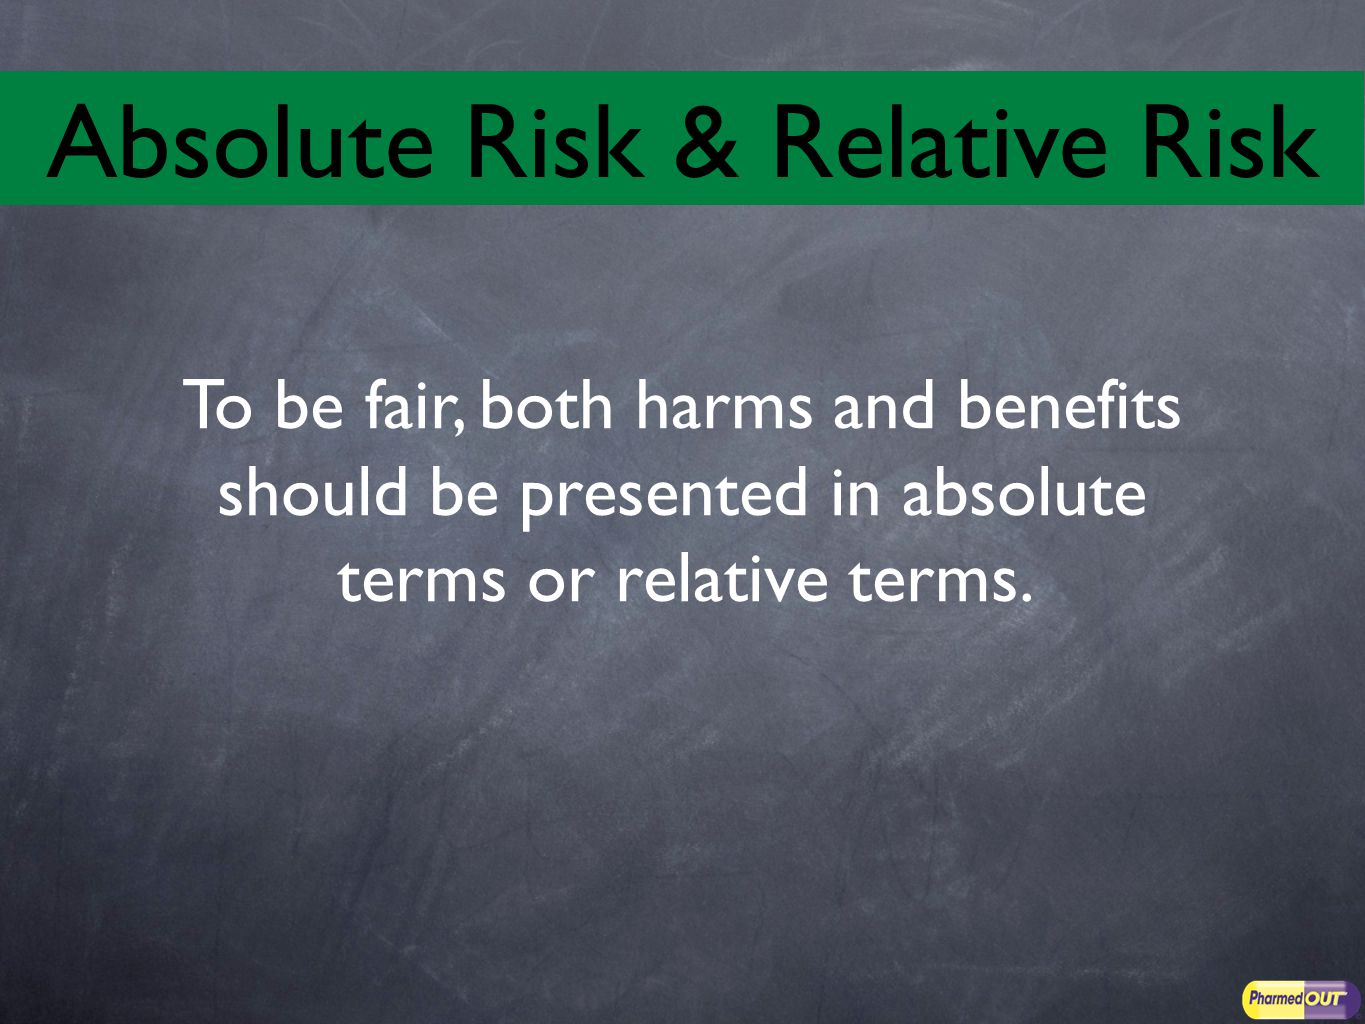 To be fair, both harms and benefits should be presented in absolute terms or relative terms.